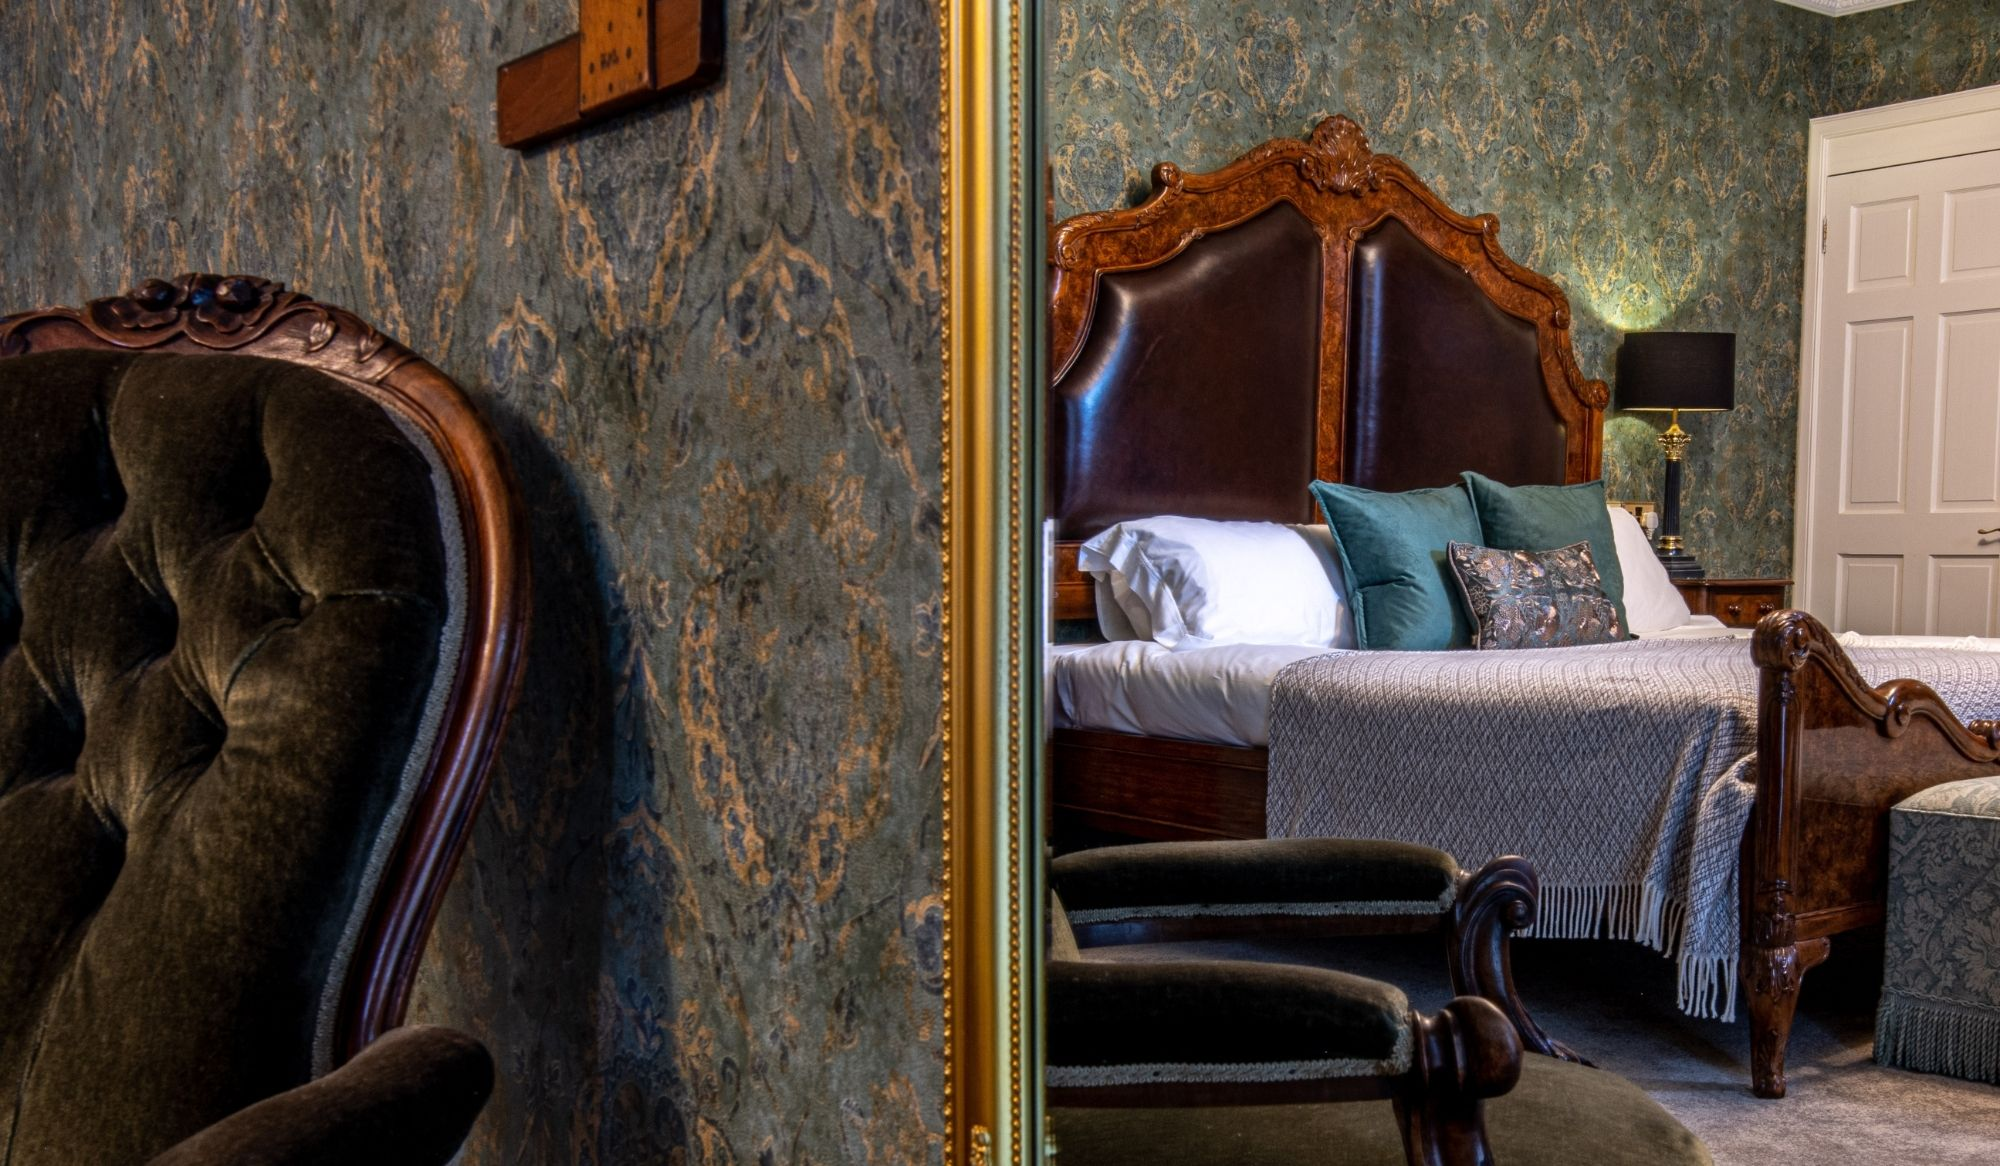 Stay in an 18th century castle